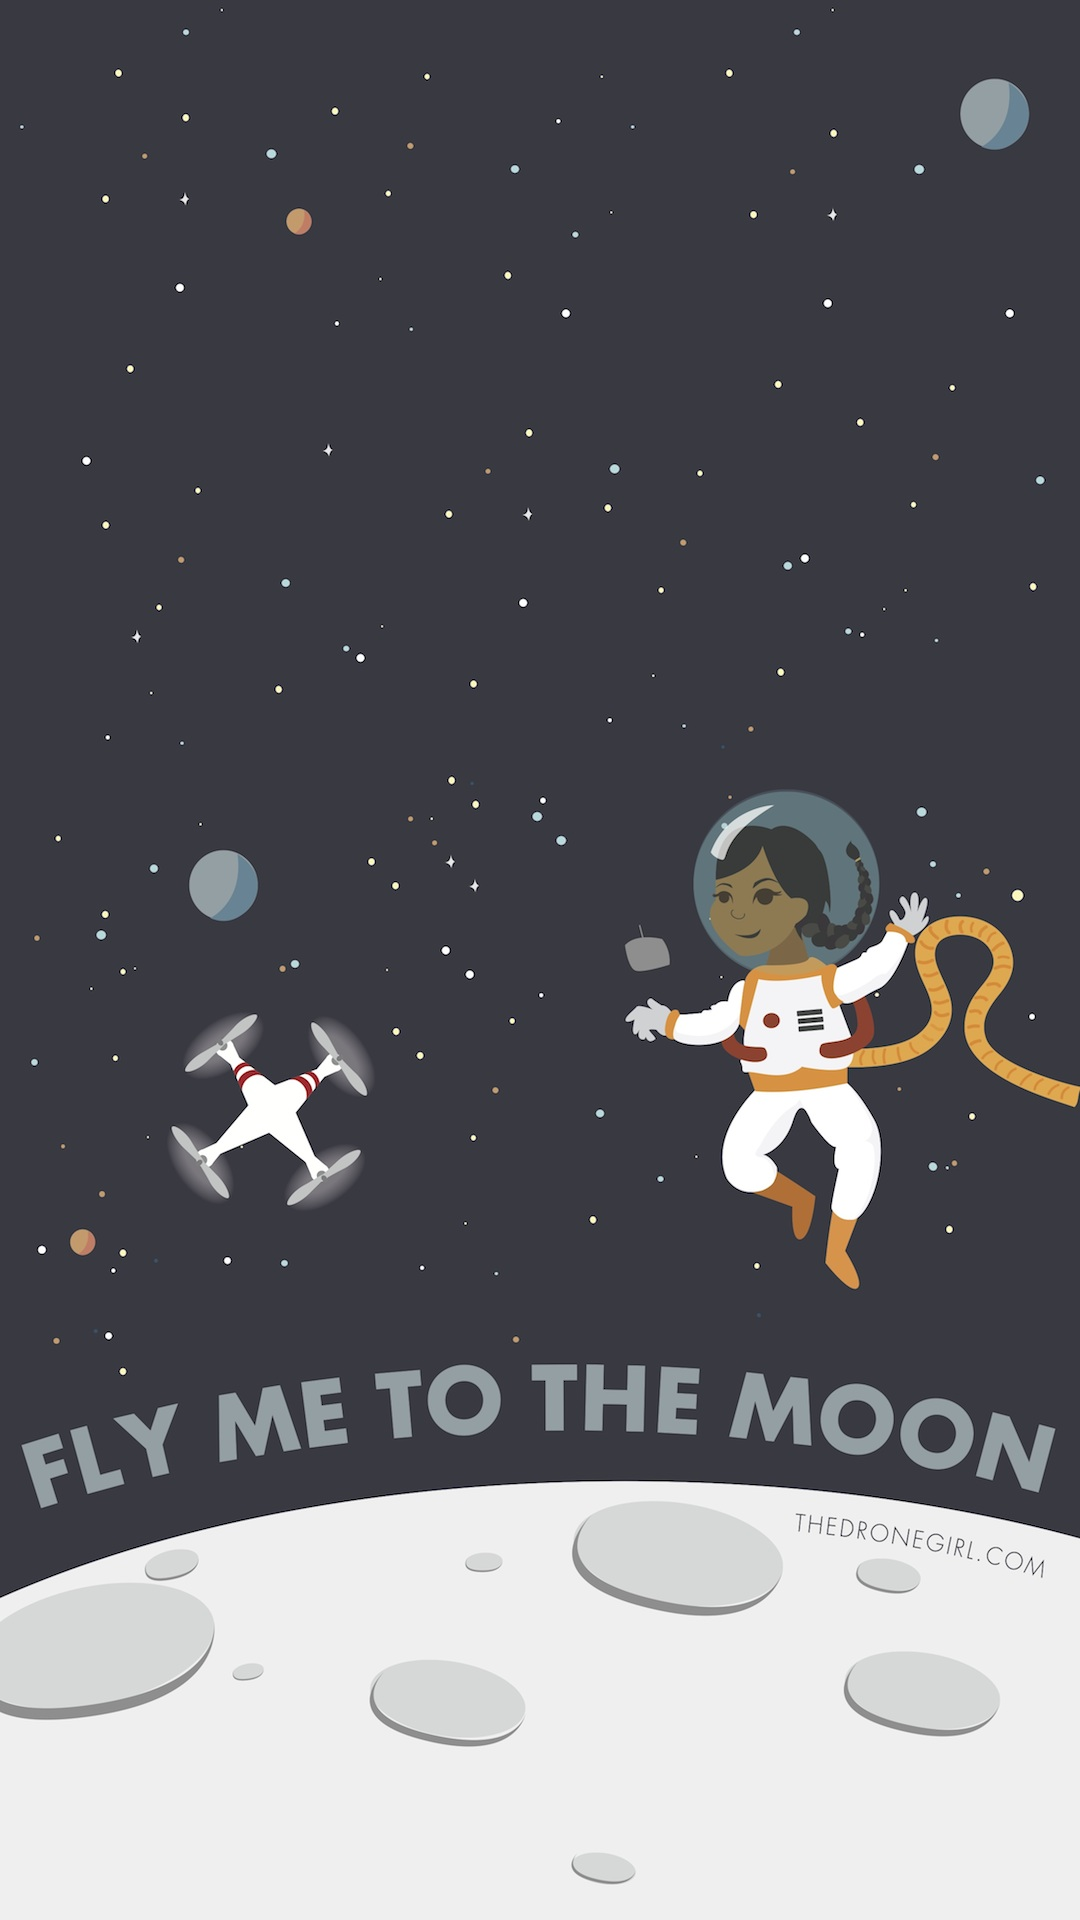 Moon To Moon Luxury Bohemian Interiors Martyn Lawrence: Drone Girl Art Series: Fly Me To The Moon